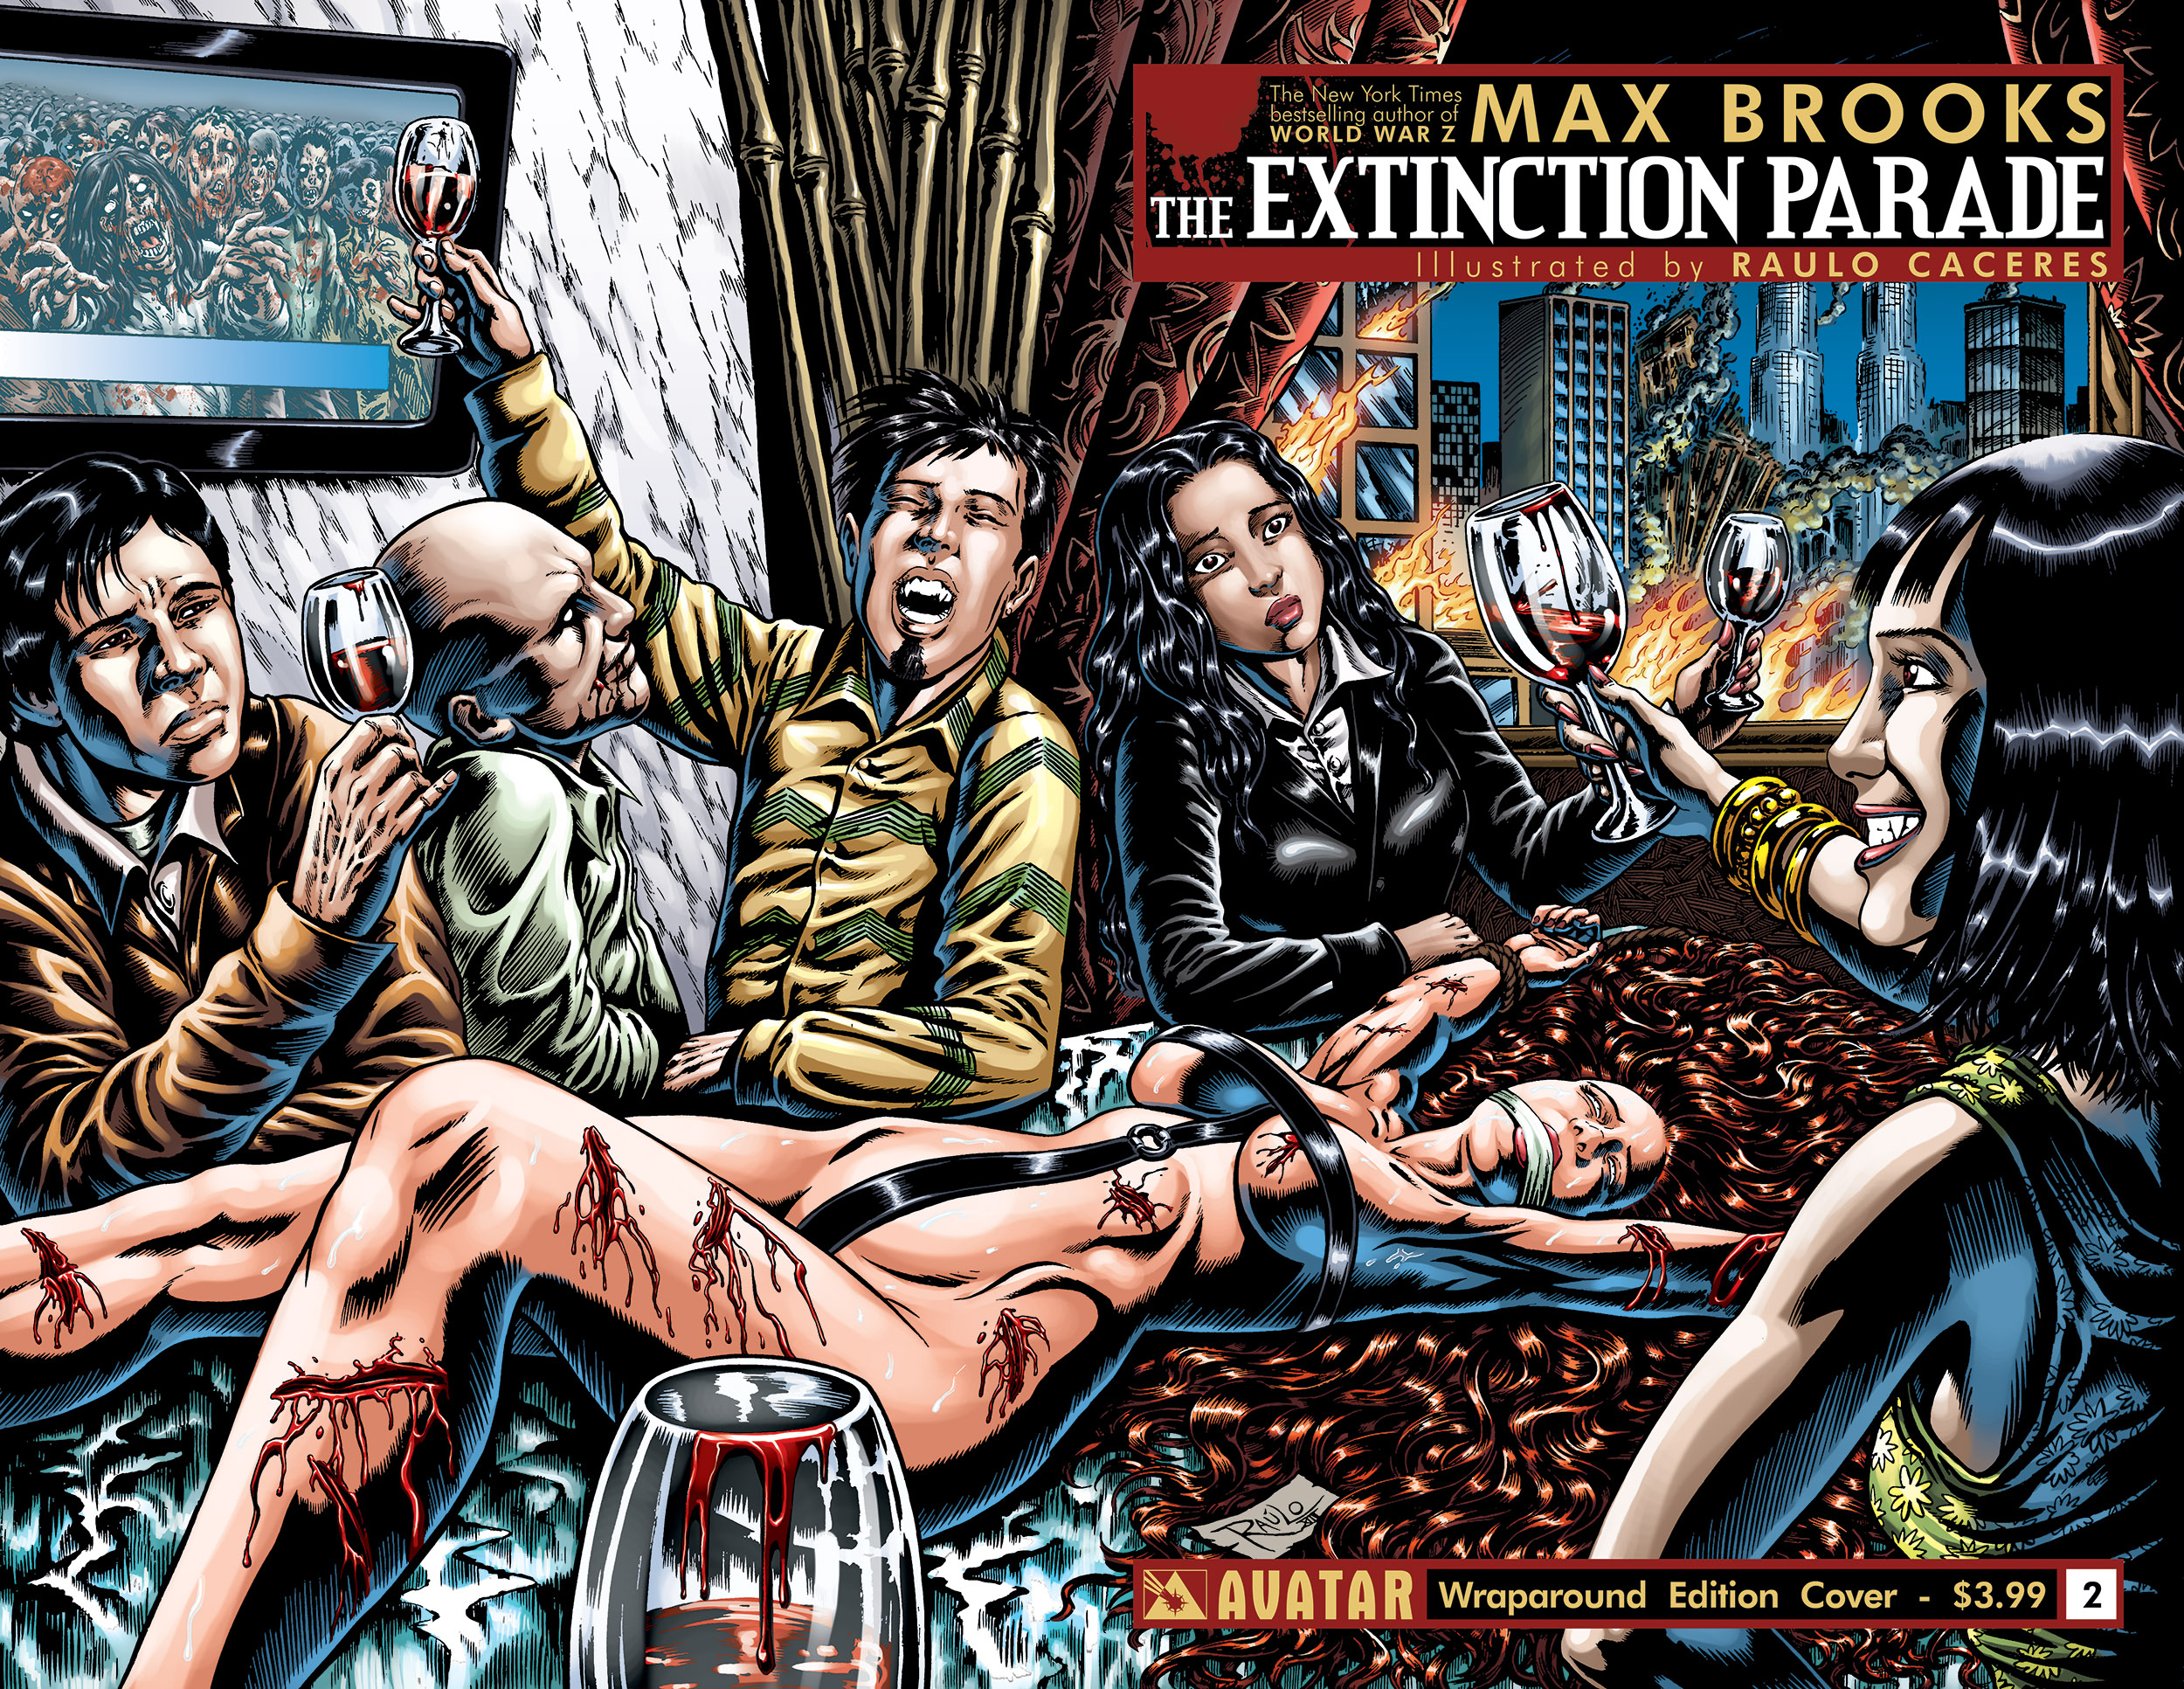 HQ Extinction Parade Wallpapers | File 2219.35Kb